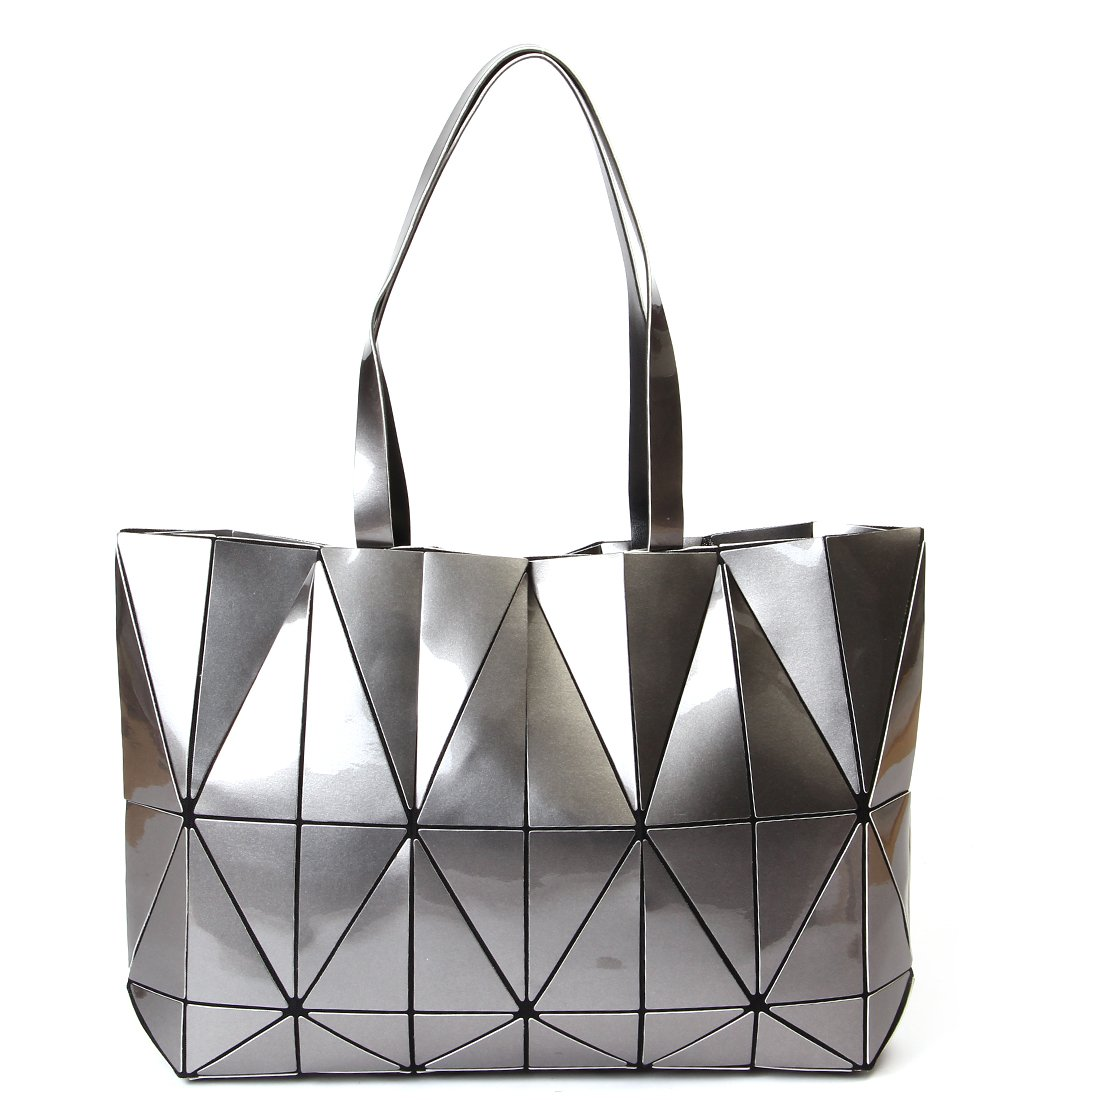 KAISIBO Unique Design Geometric Lattice Handbag Totes Purses for Women(K3138SR)